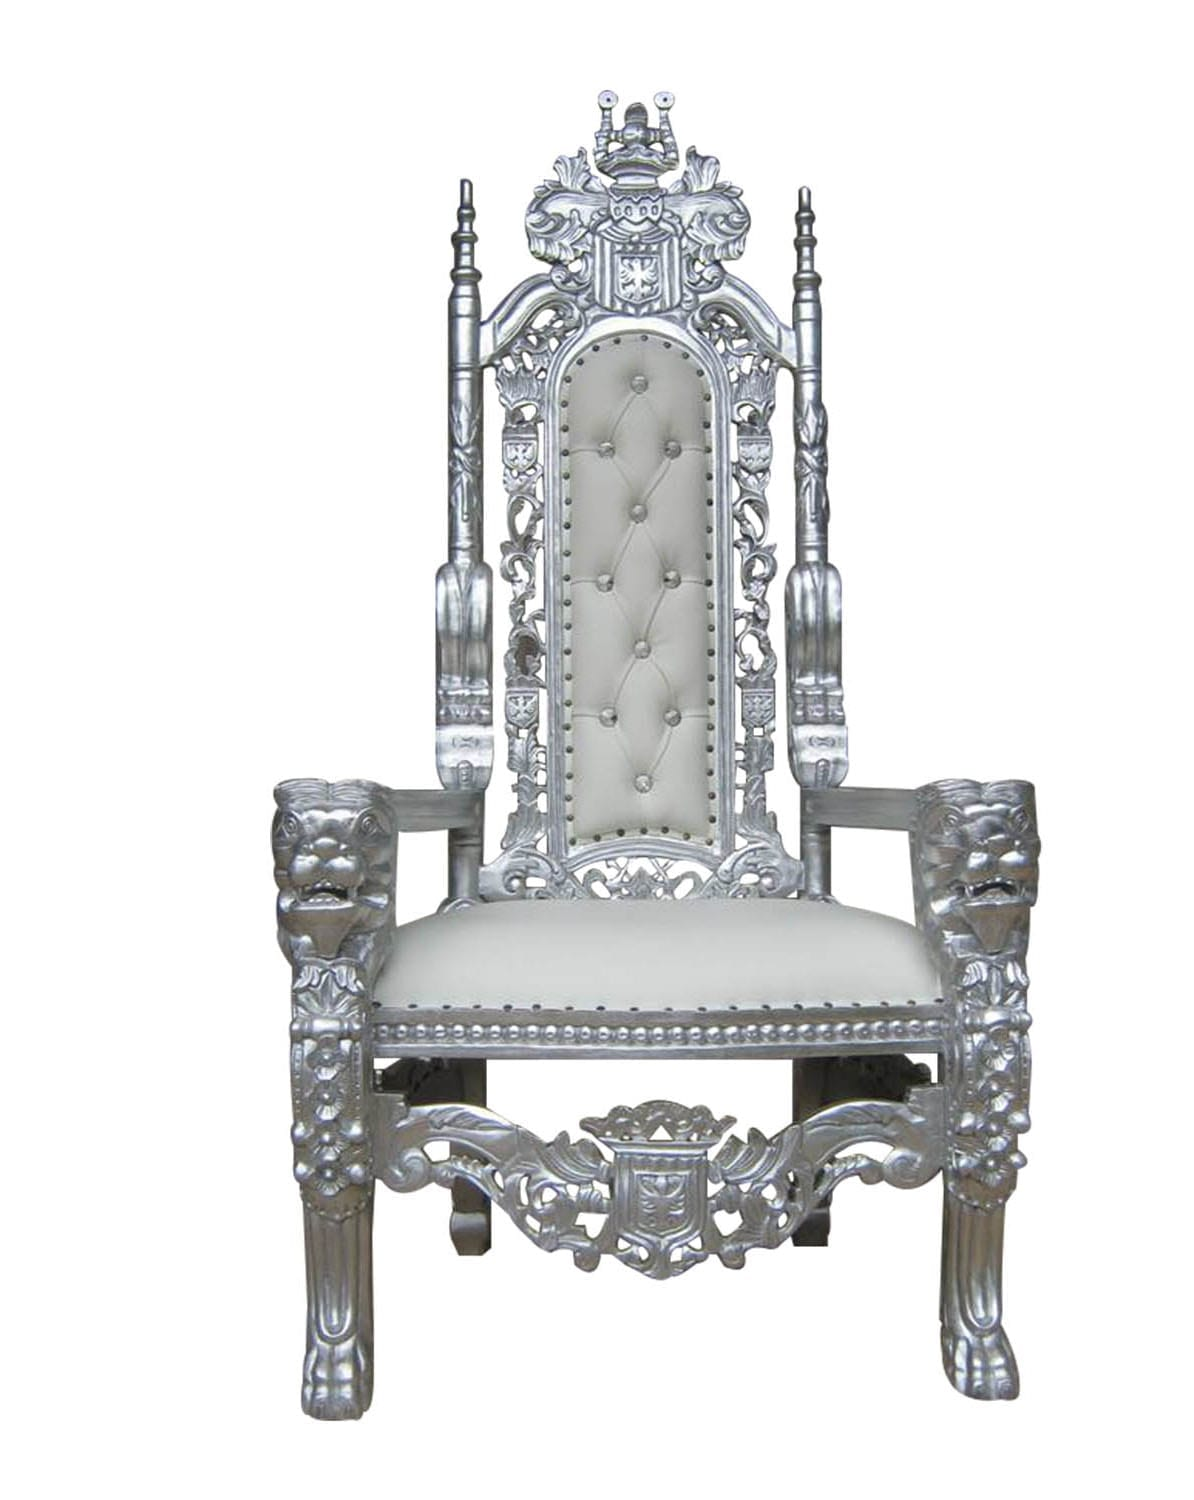 King Throne Chair Rental Silver Throne Chair Del Rey Party Rentals